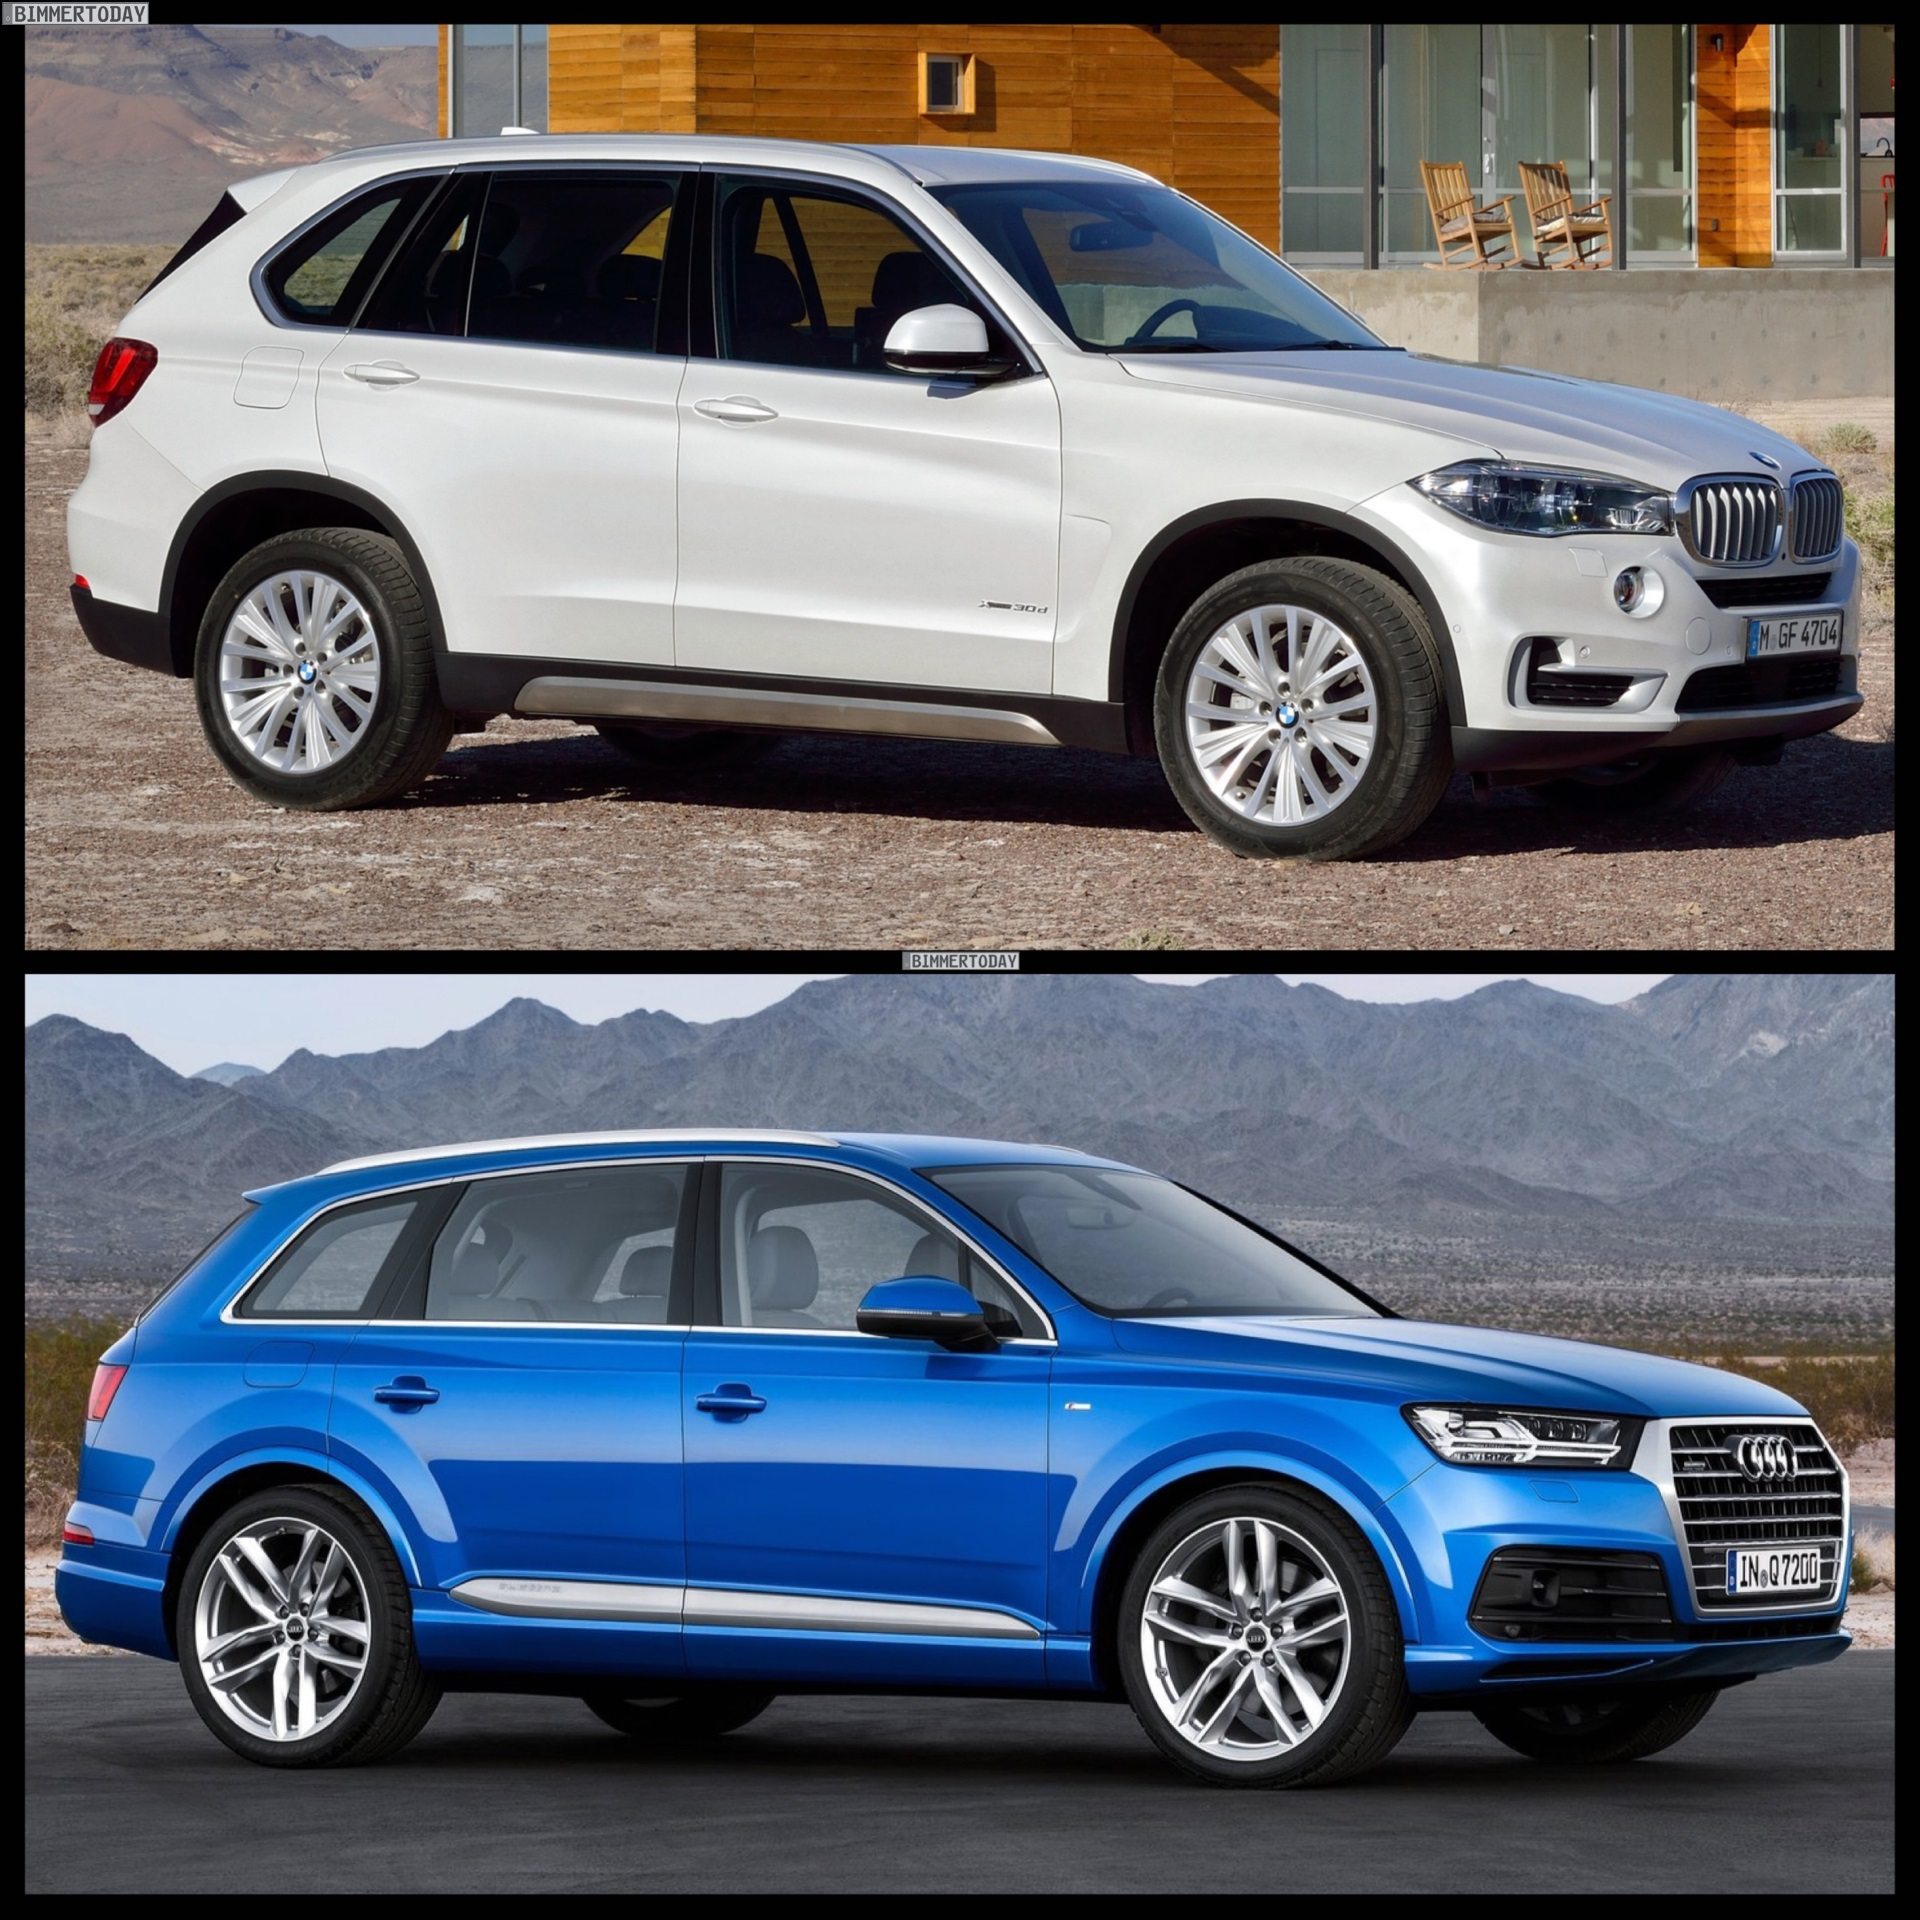 2015 Audi Q7 Vs 2015 Bmw X5 Photo Comparison